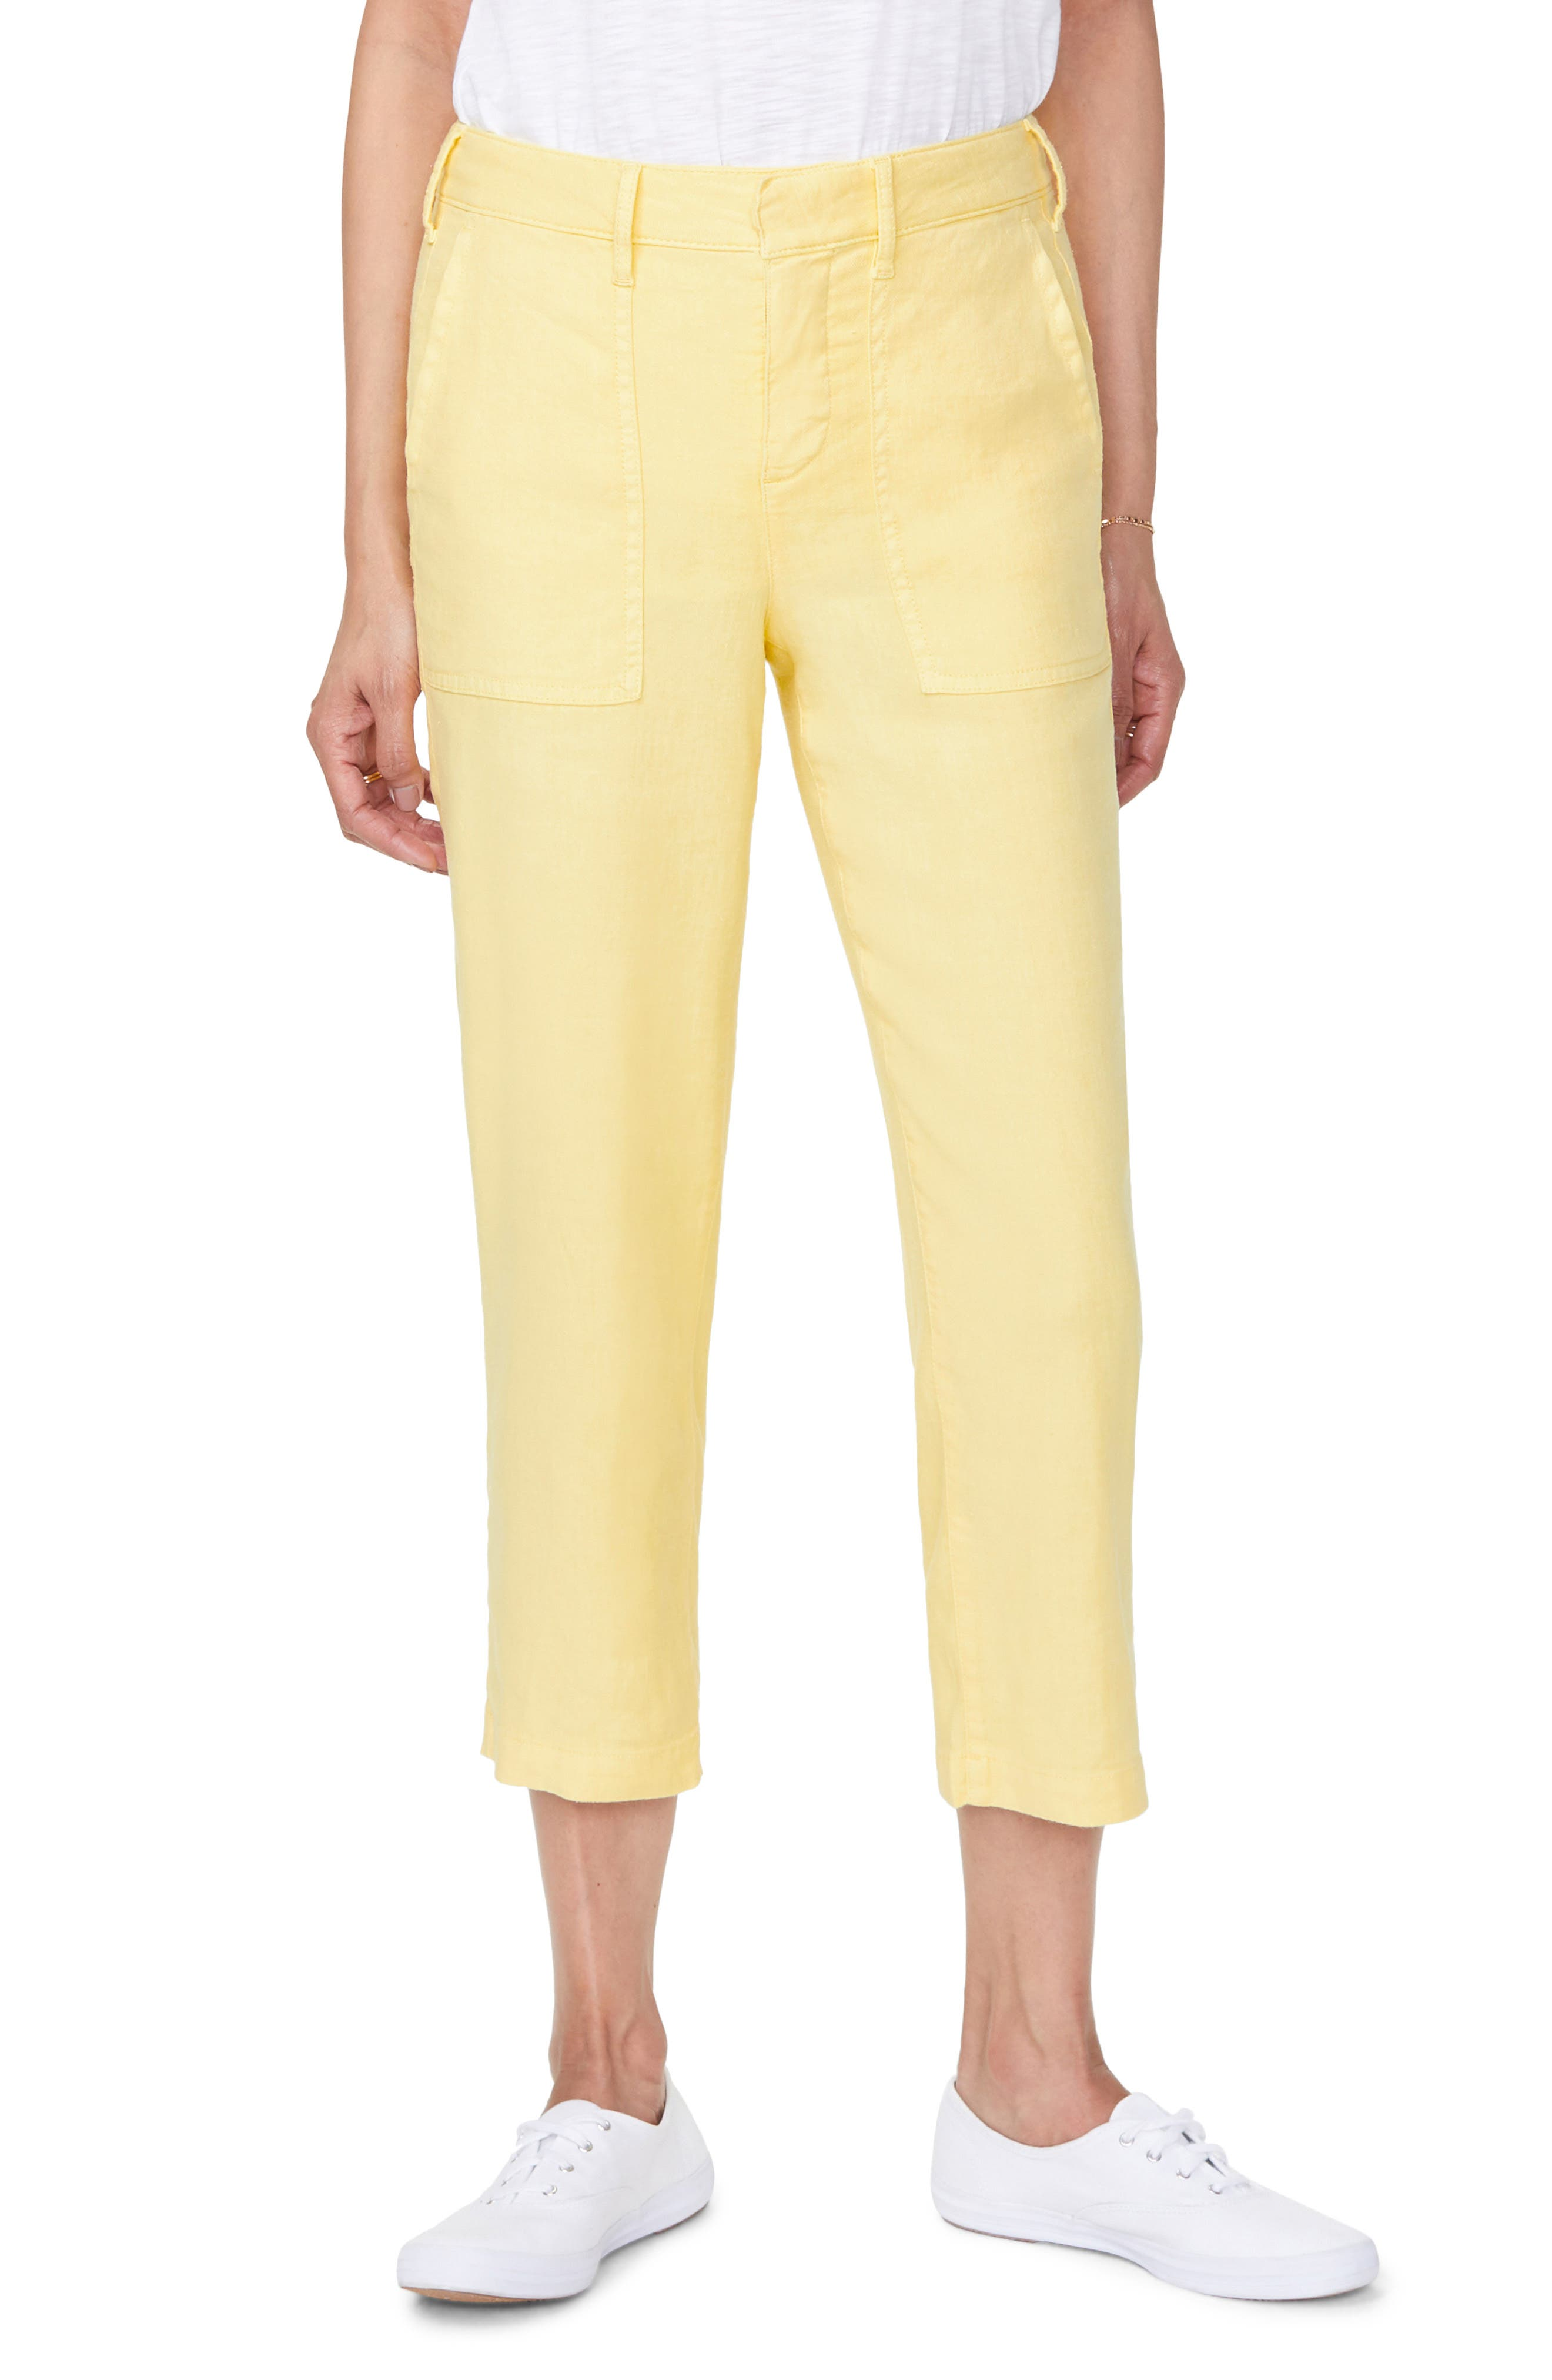 Women's Nydj Utility Crop Linen Blend Pants,  6 - Yellow